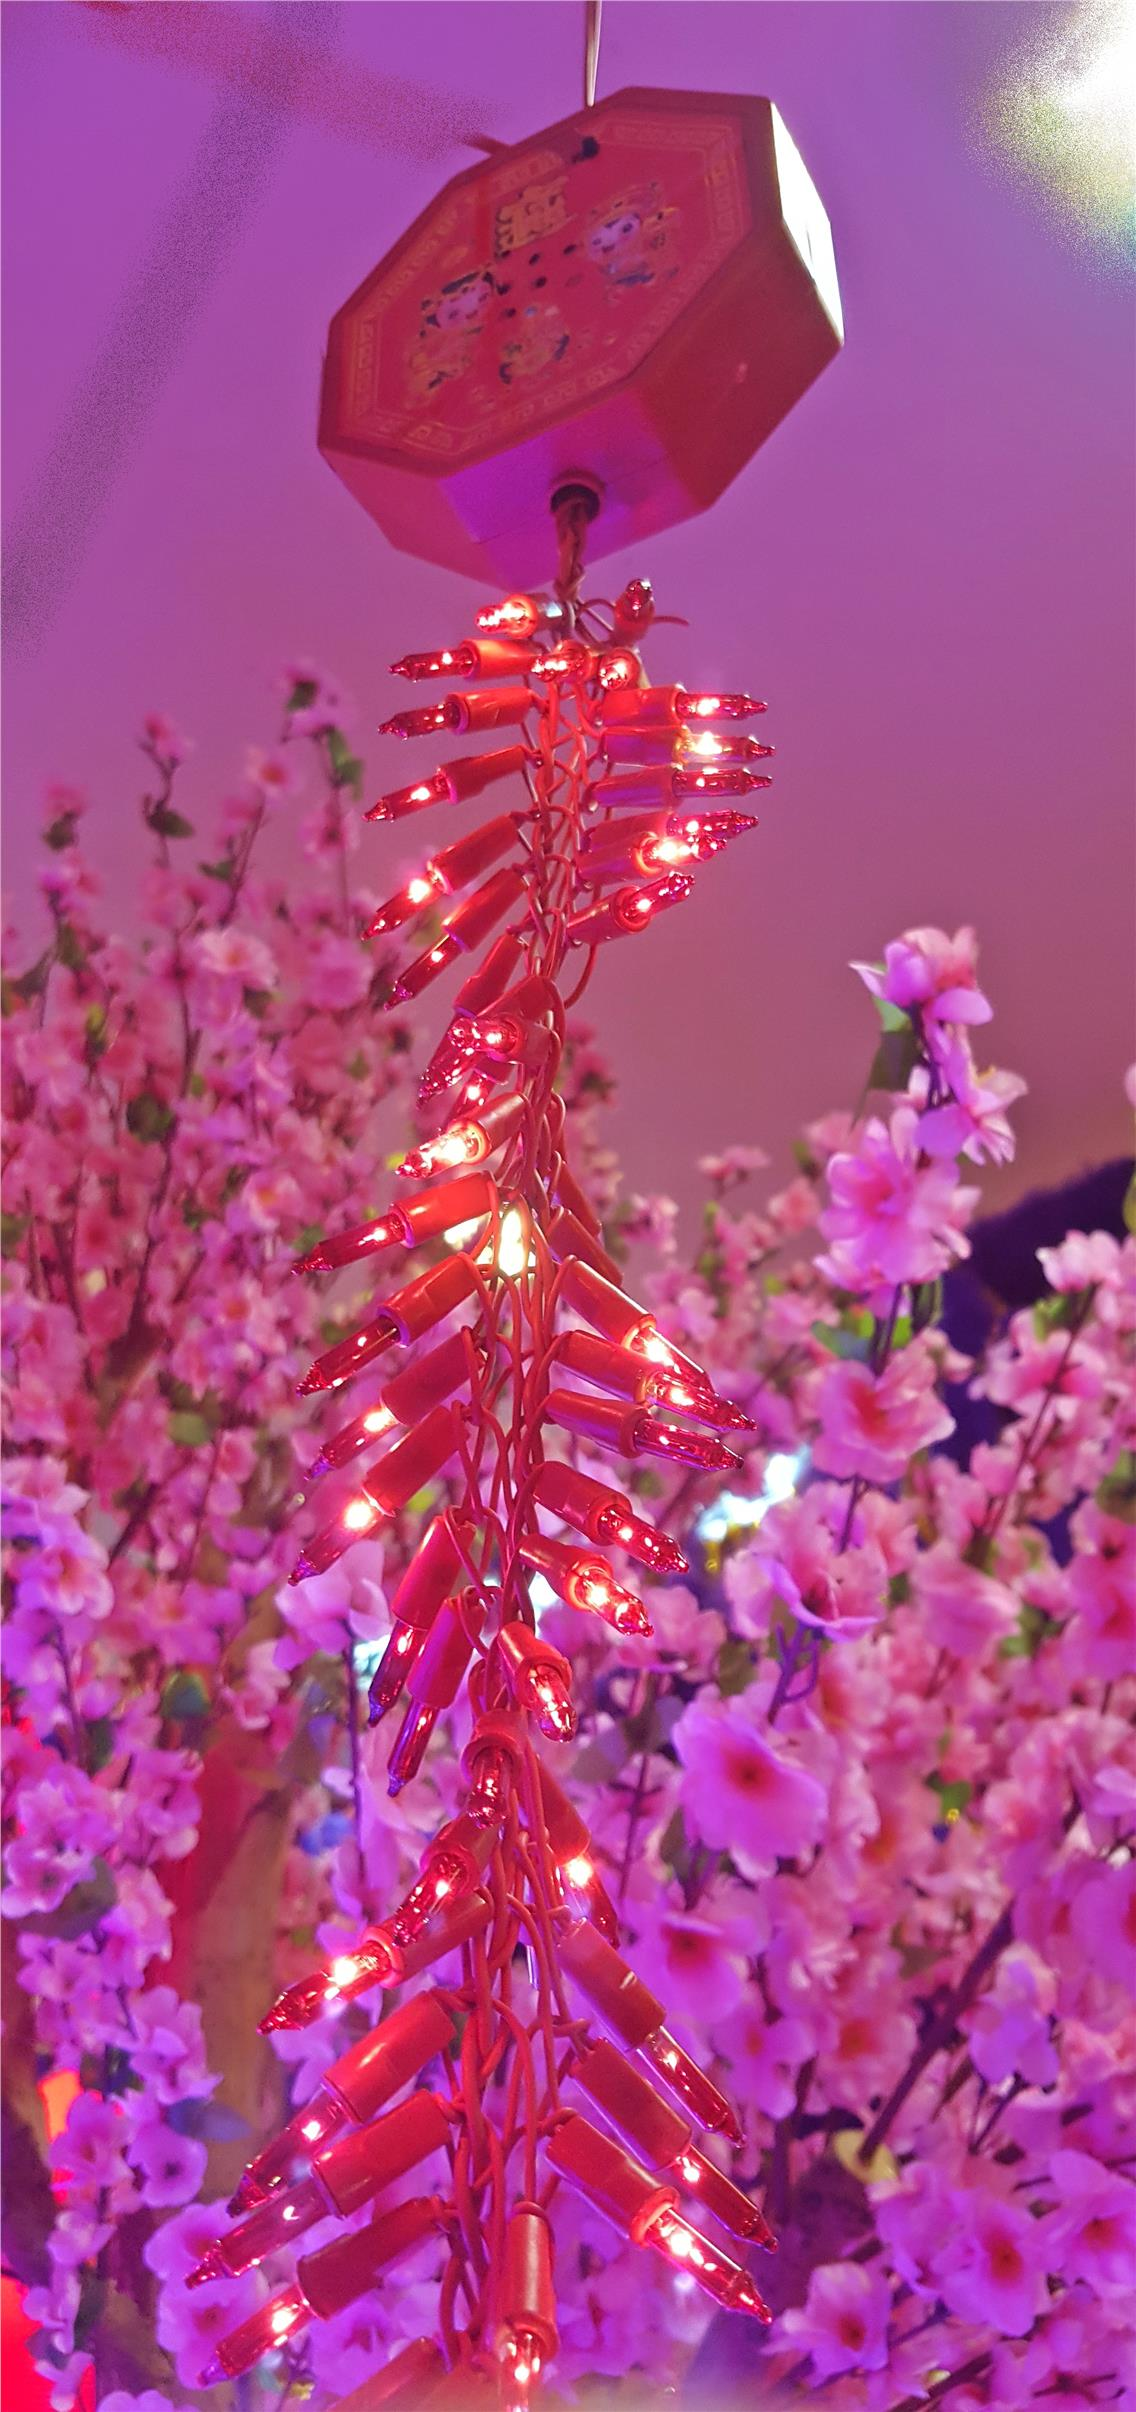 Chinese New Year (CNY) Decoration - Fire Crackers with Lights